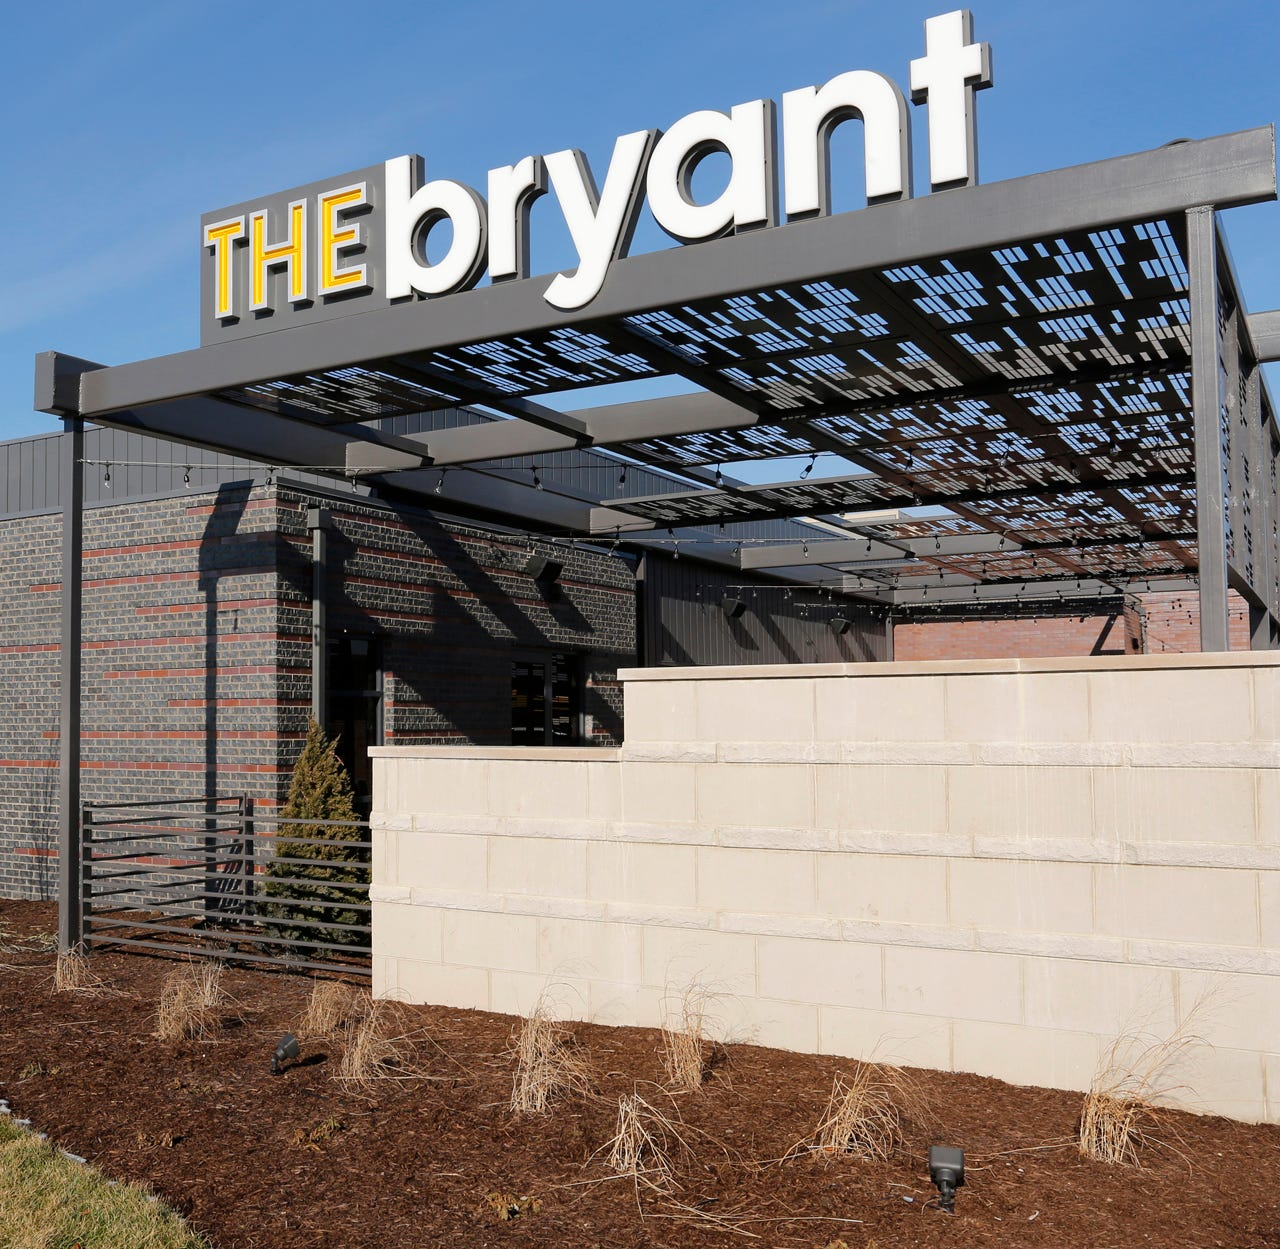 Family of restaurateurs open fifth eatery with 'The Bryant'